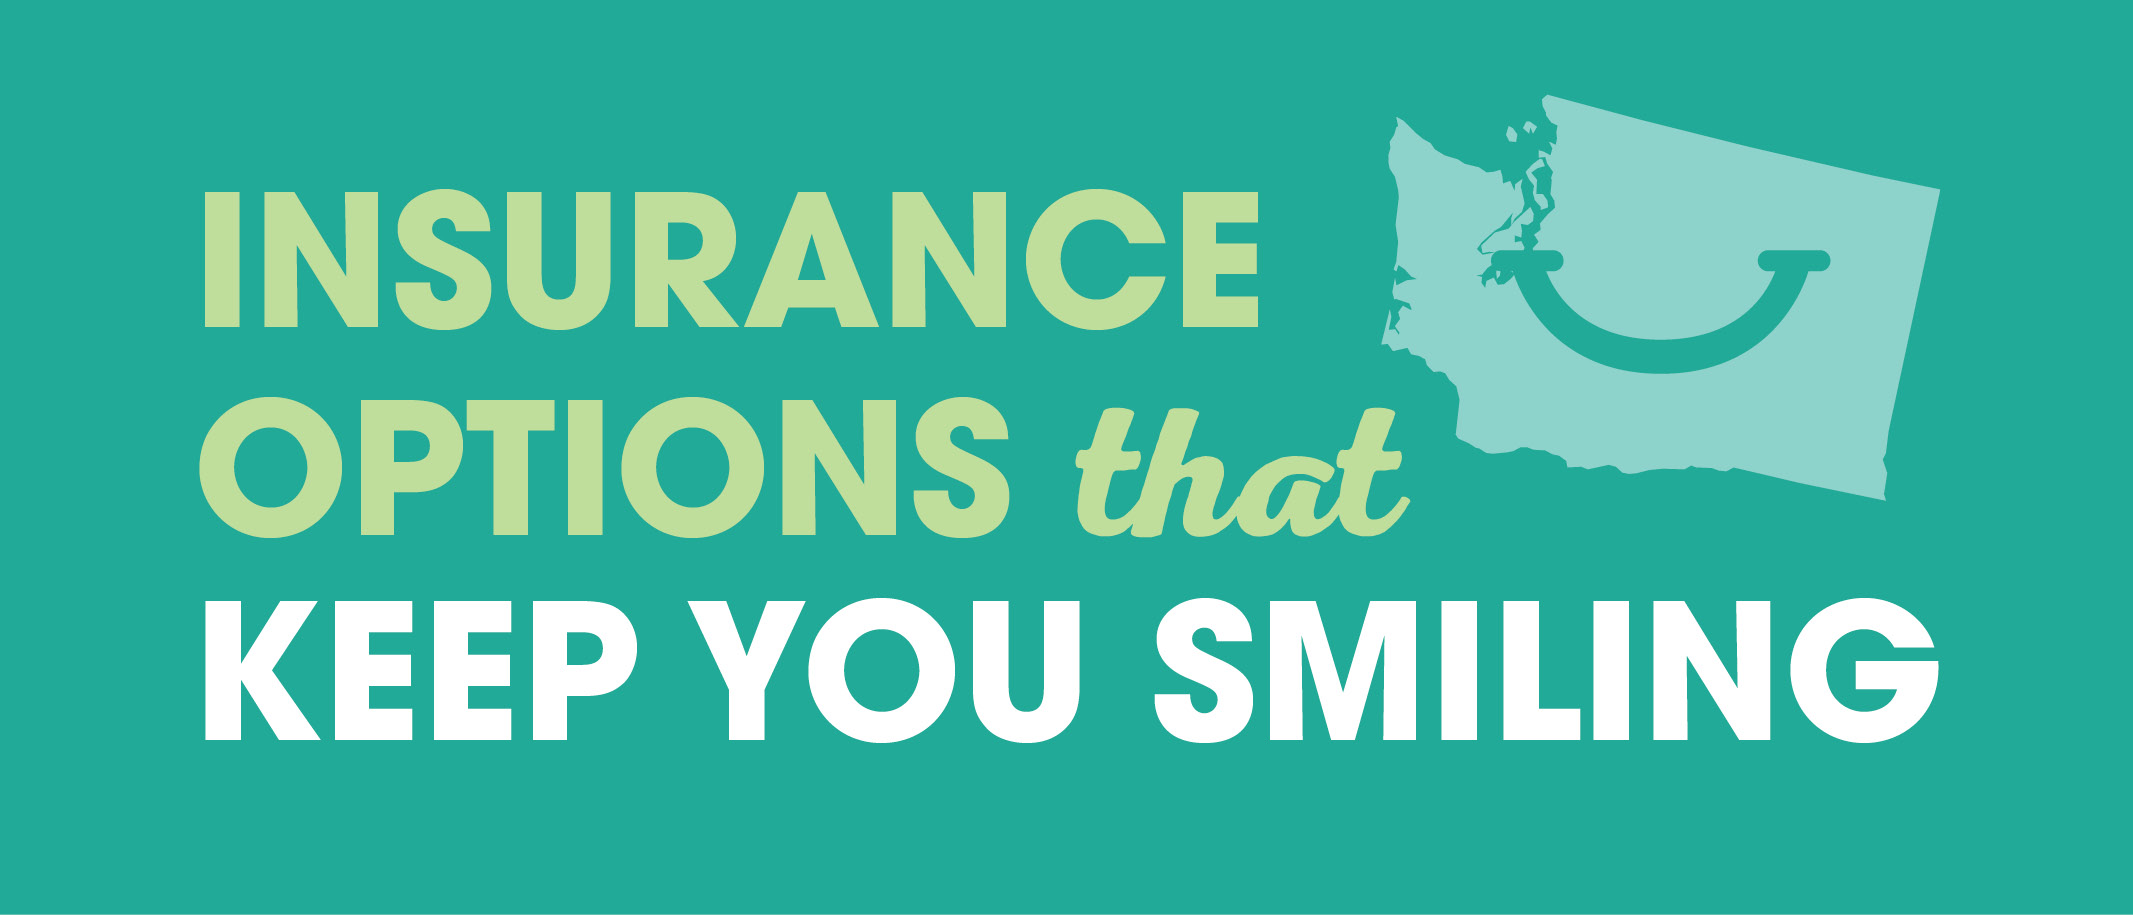 Insurance Options that Keep You Smiling